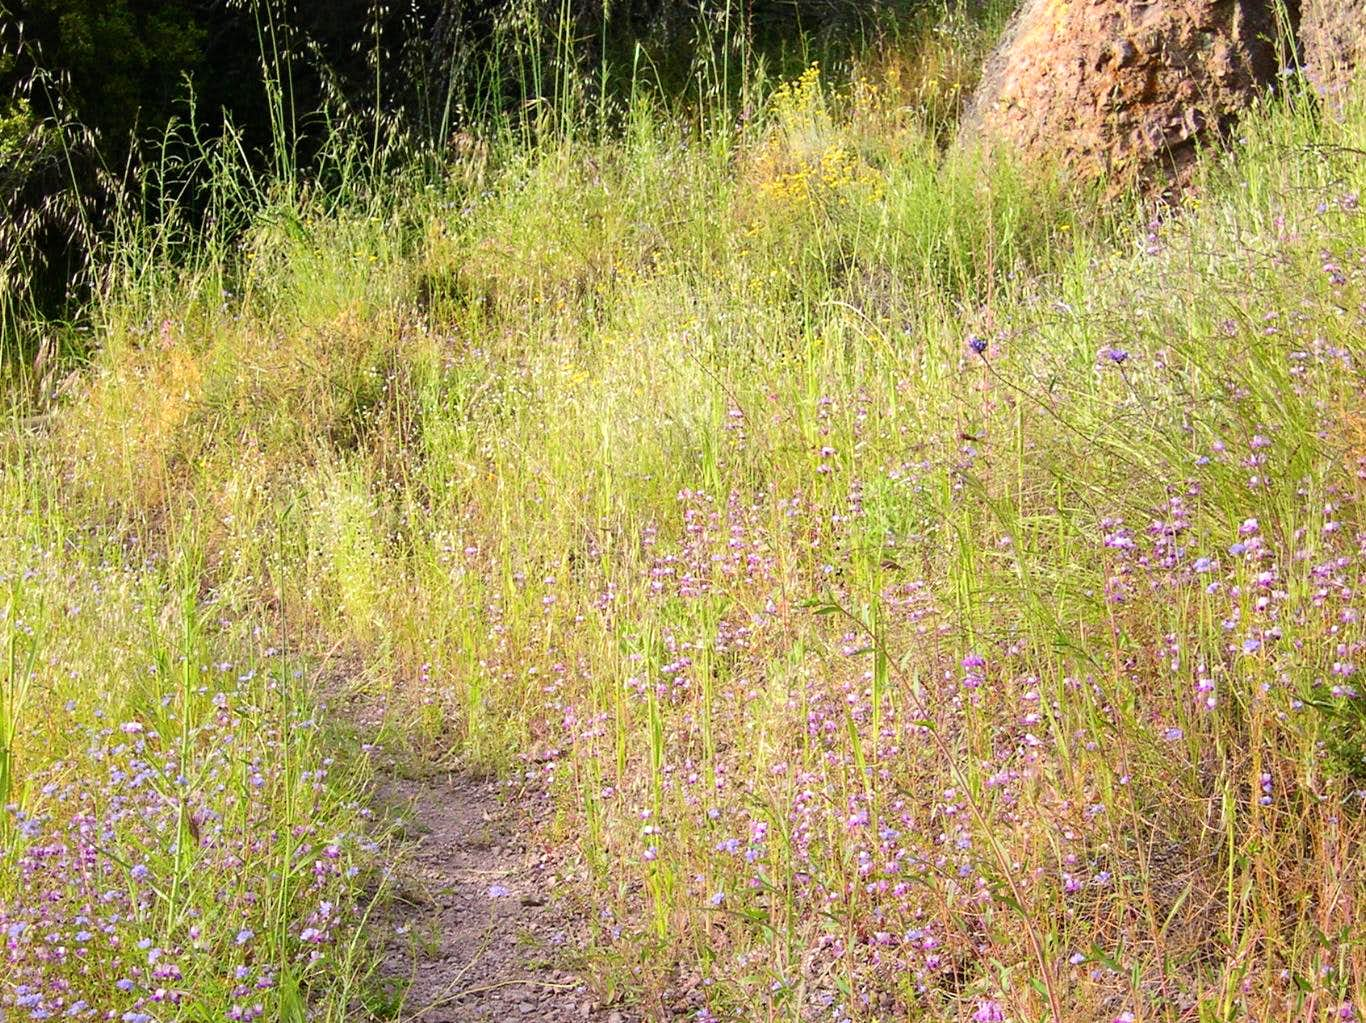 Wildflowers of the Pinnacles